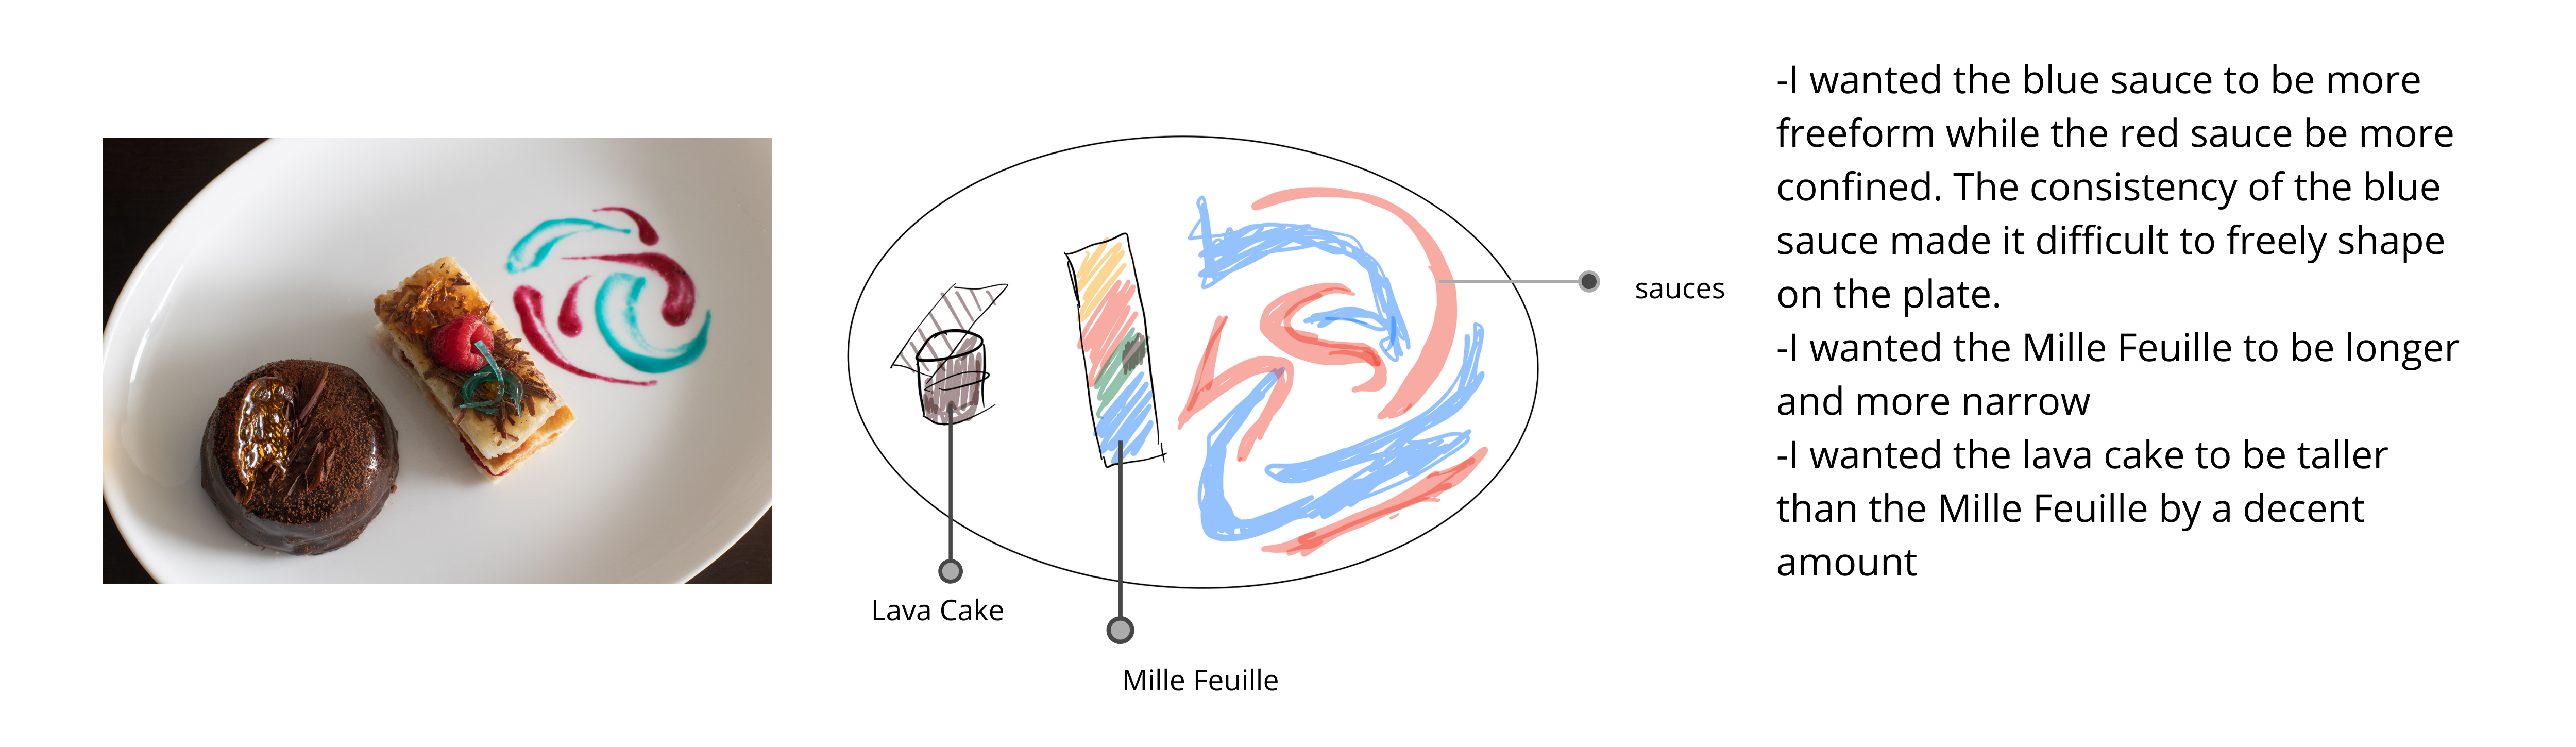 a picture of my dessert, the sketch, and notes about what I couldn't include